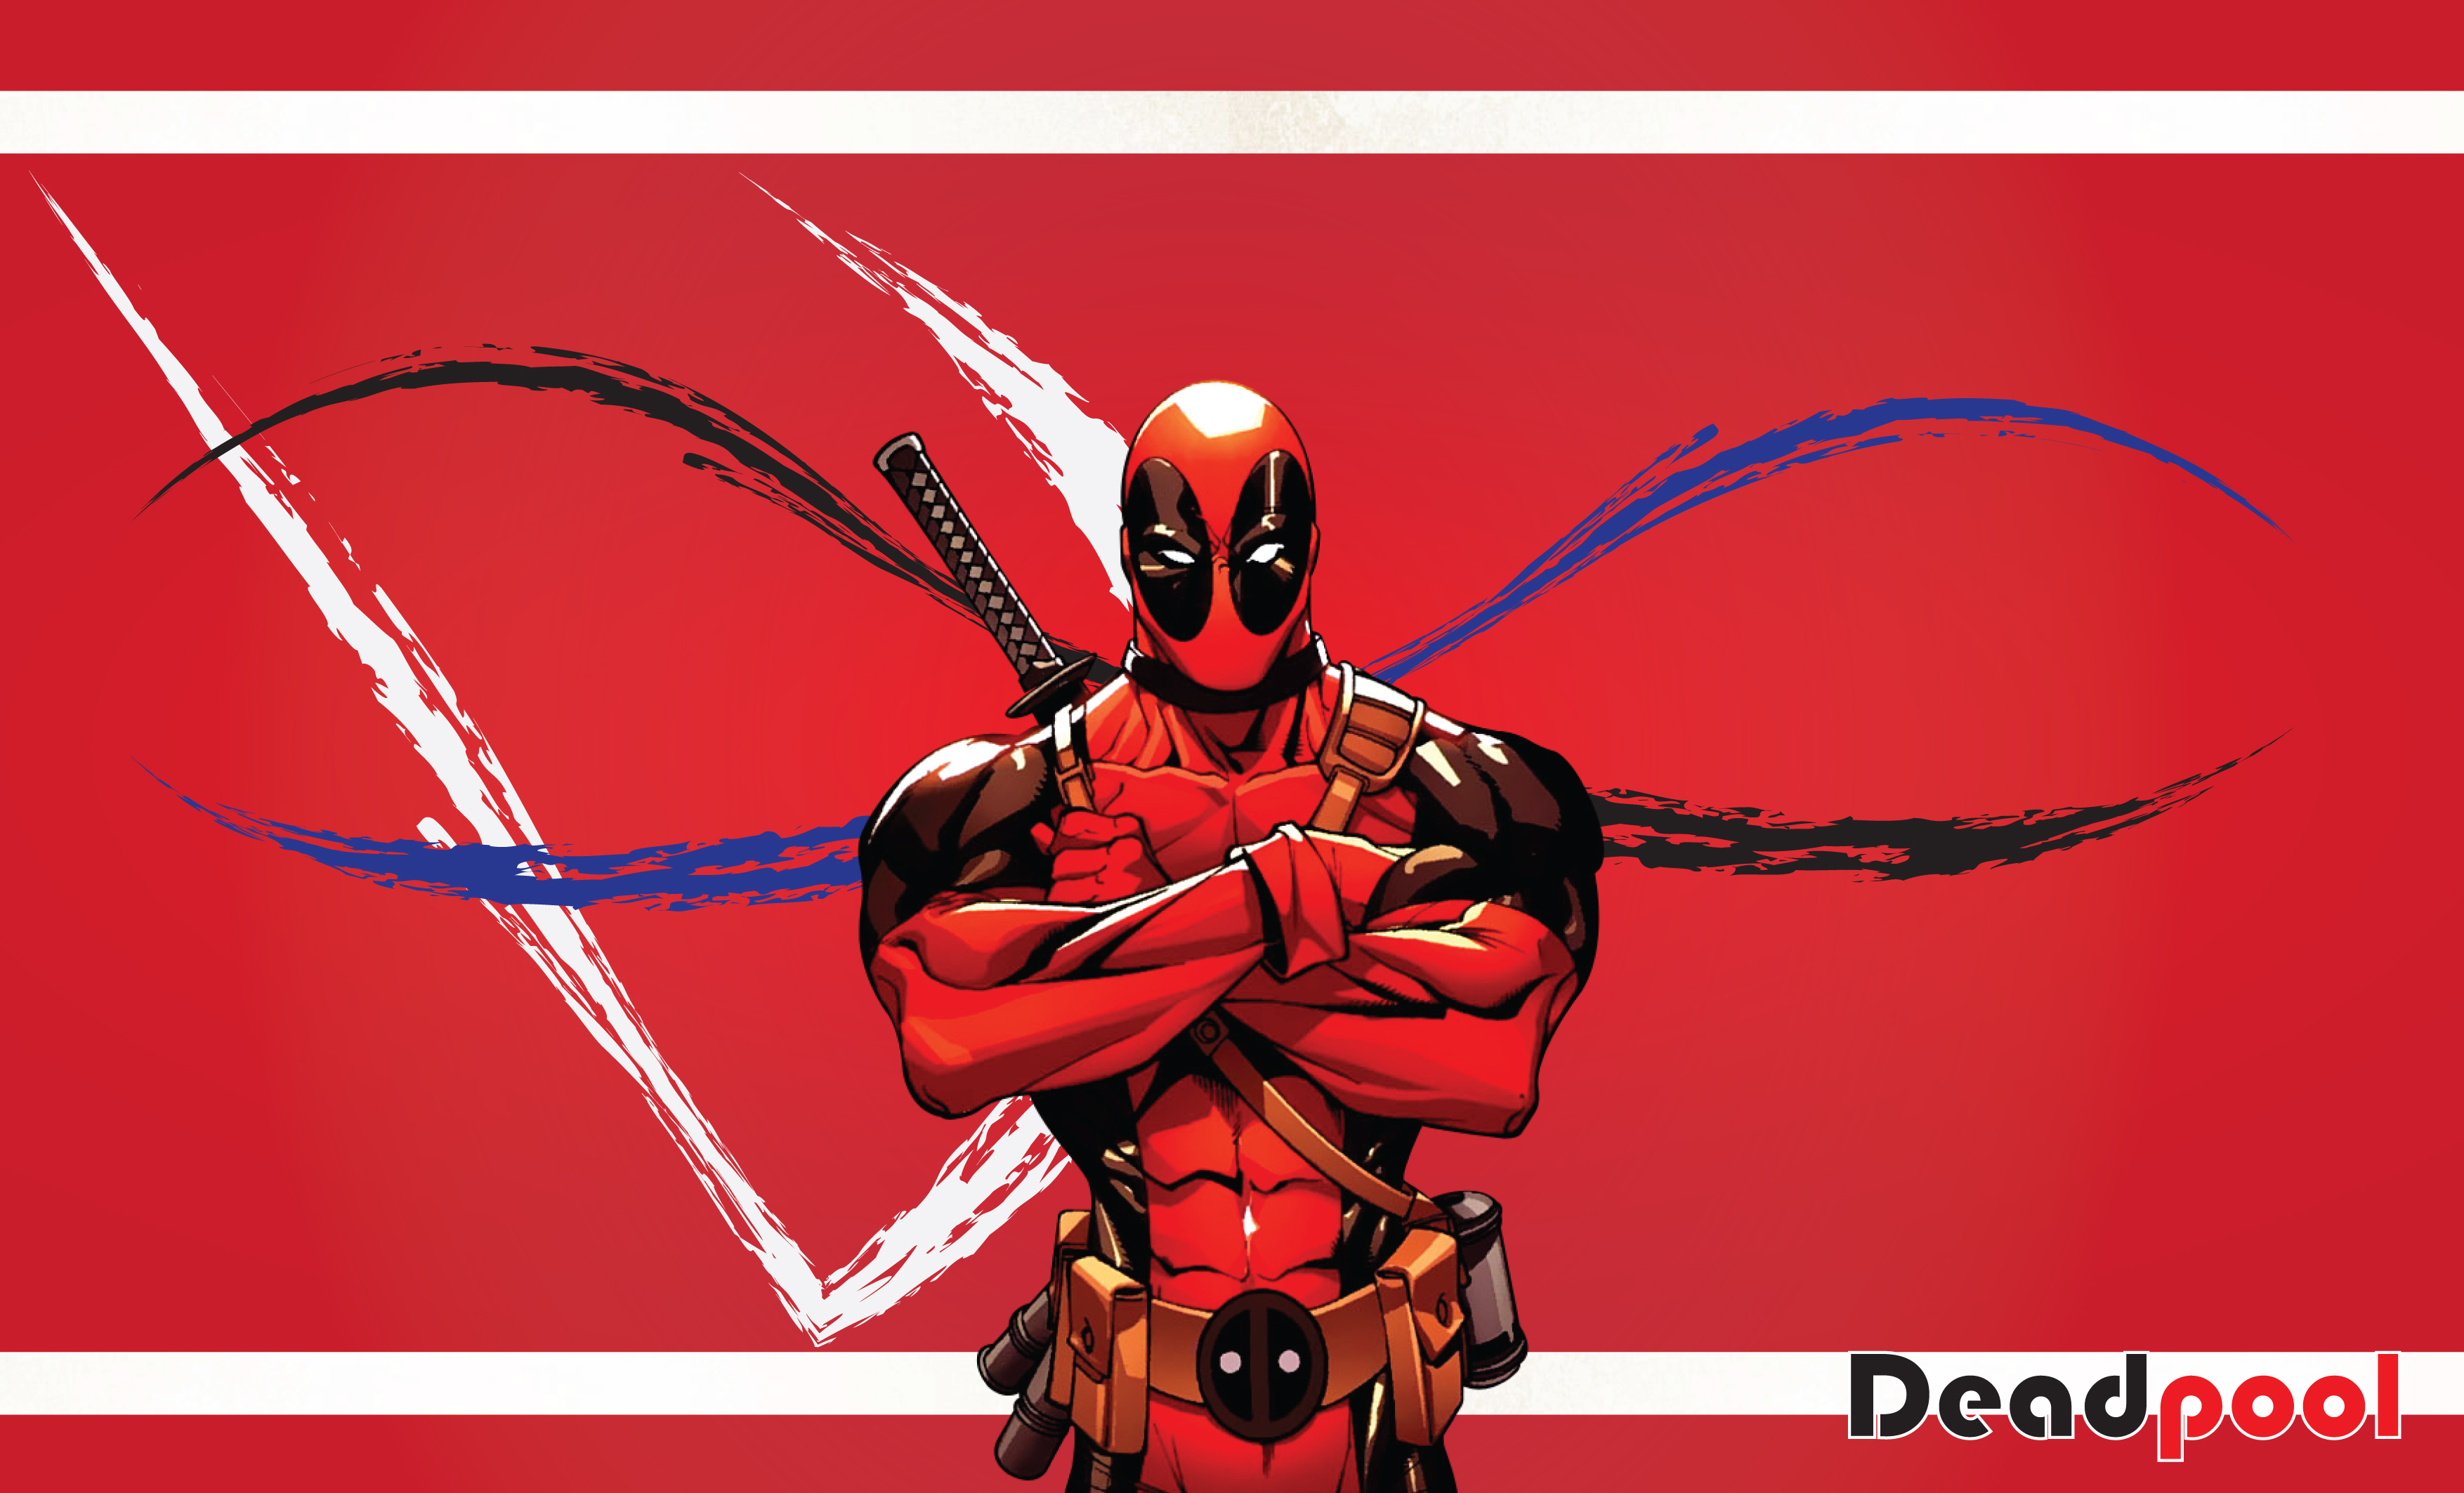 Cool wallpaper with deadpool cartoon character 27 pics - Cartoon character wallpaper ...